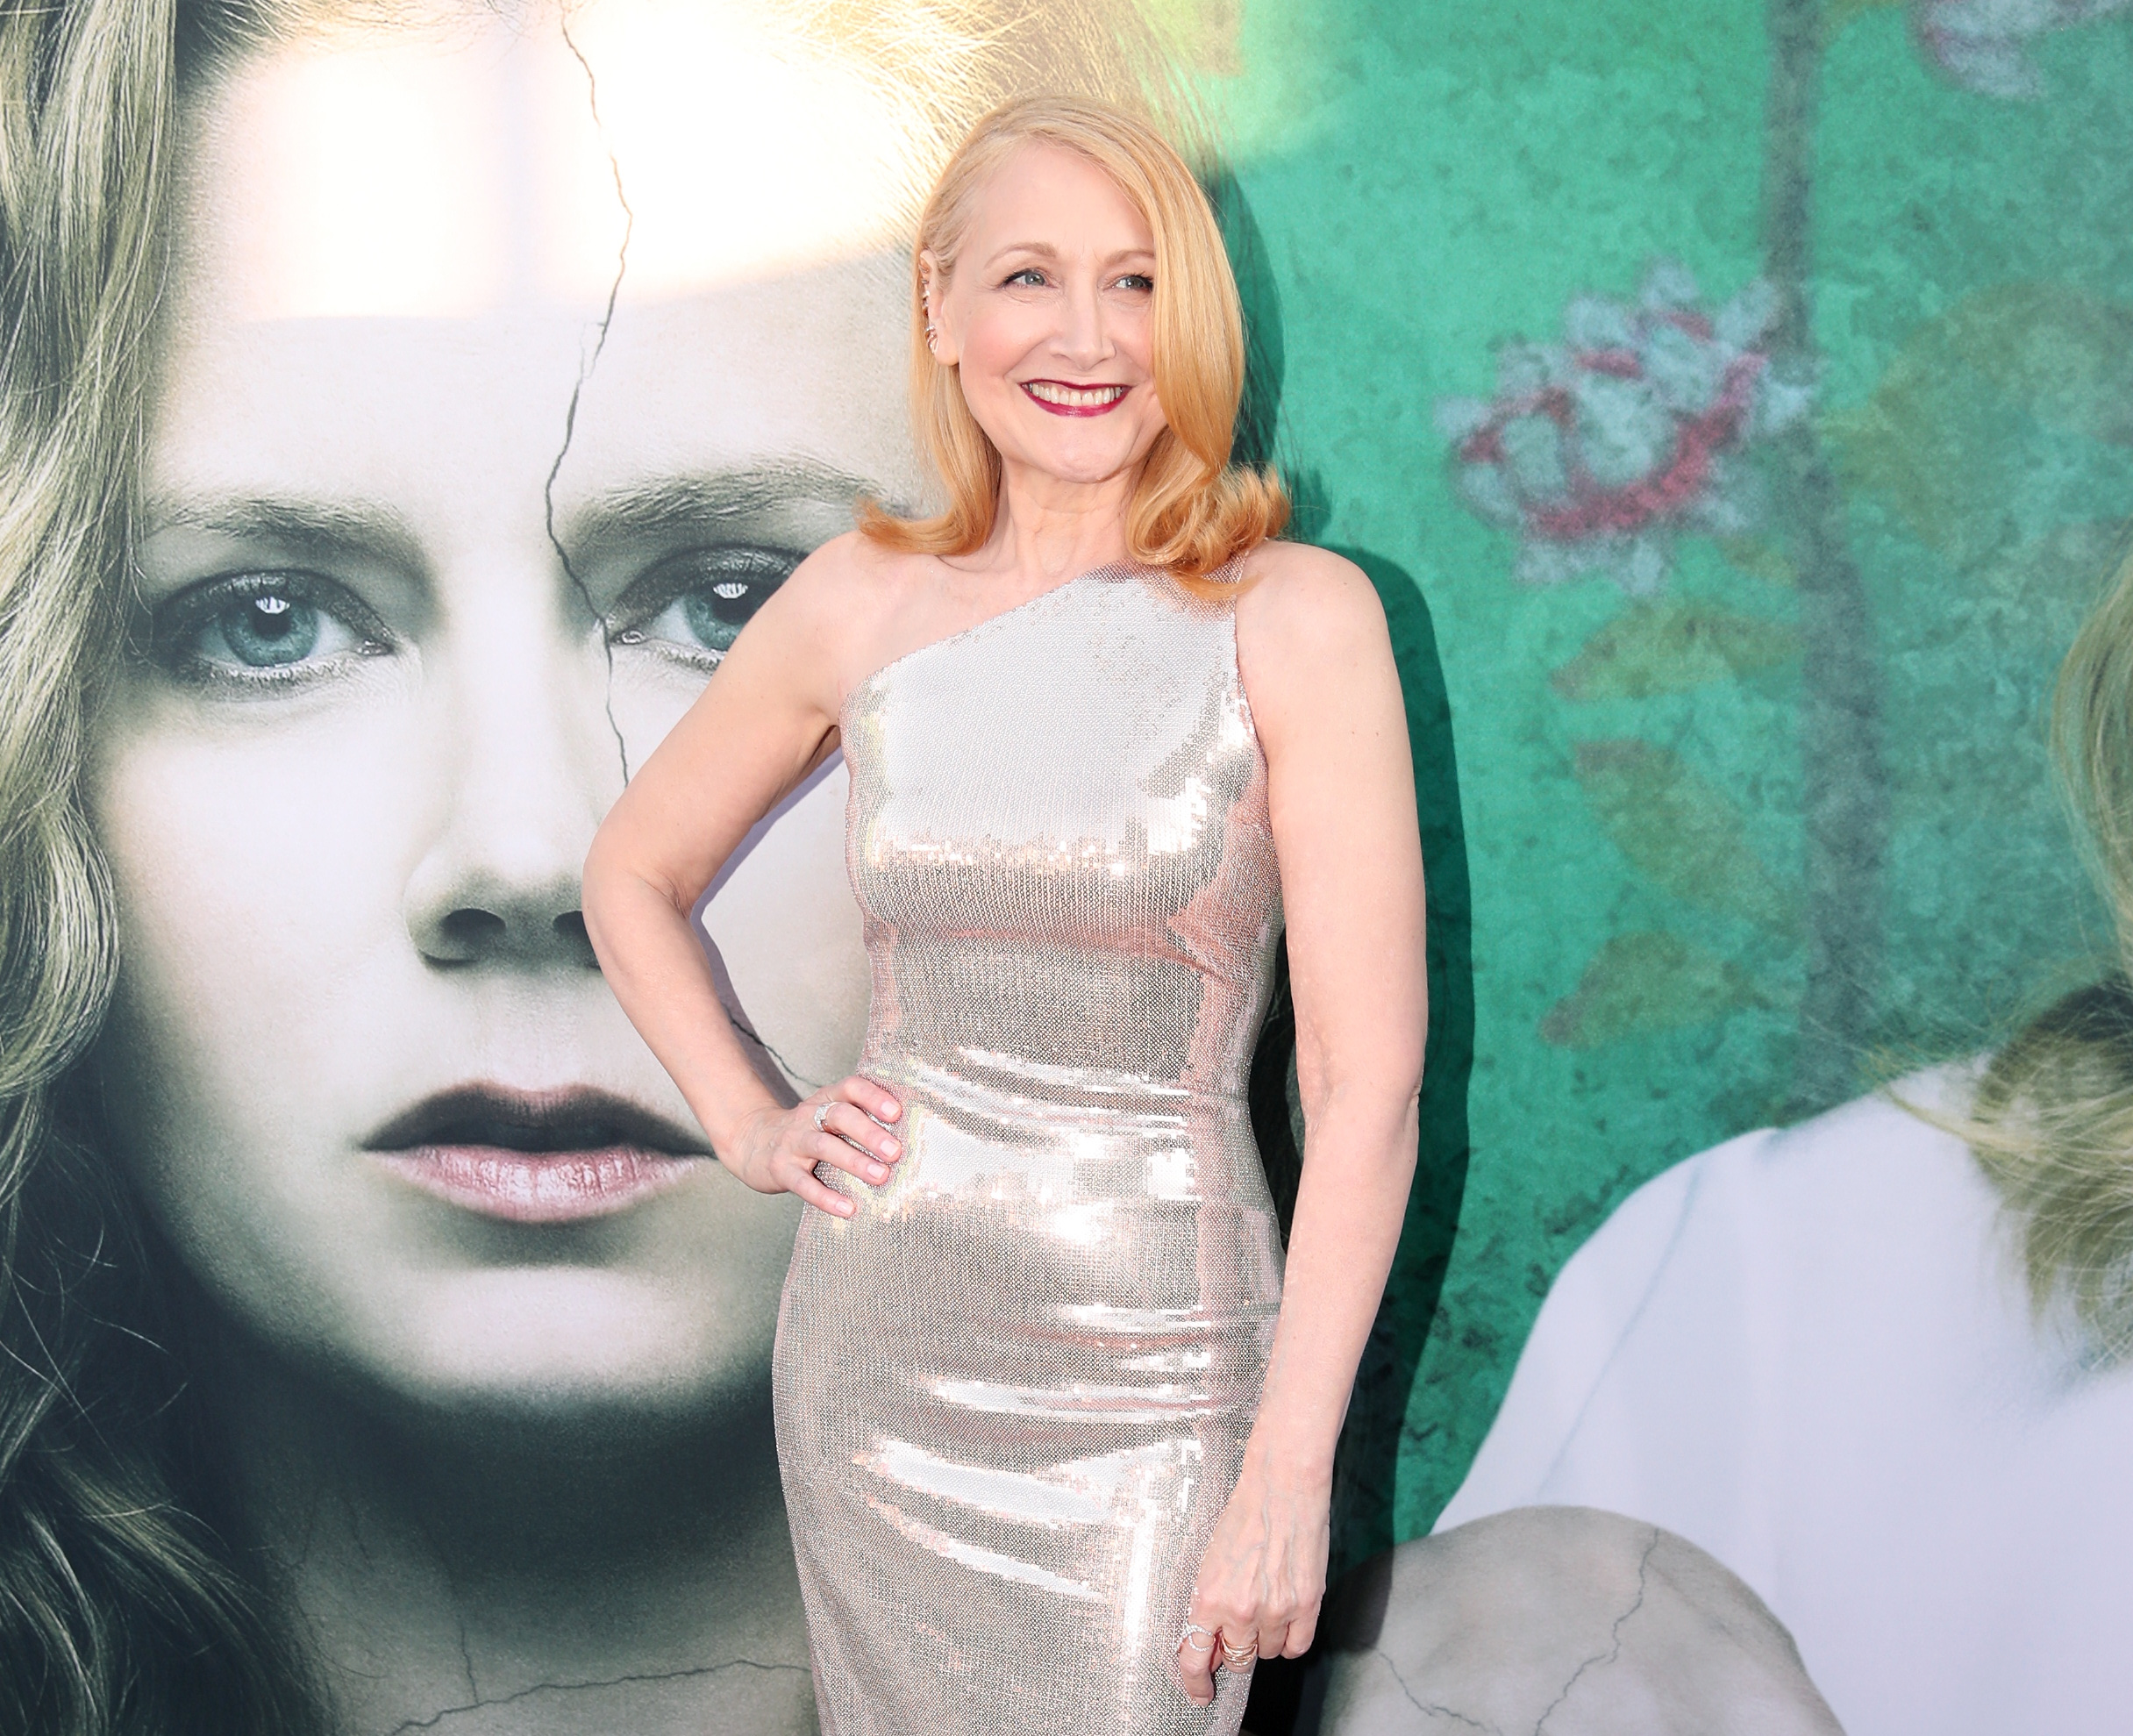 Patricia Clarkson attends the premiere of HBO's 'Sharp Objects' at The Cinerama Dome on June 26, 2018 in Los Angeles, California.(Getty Images)